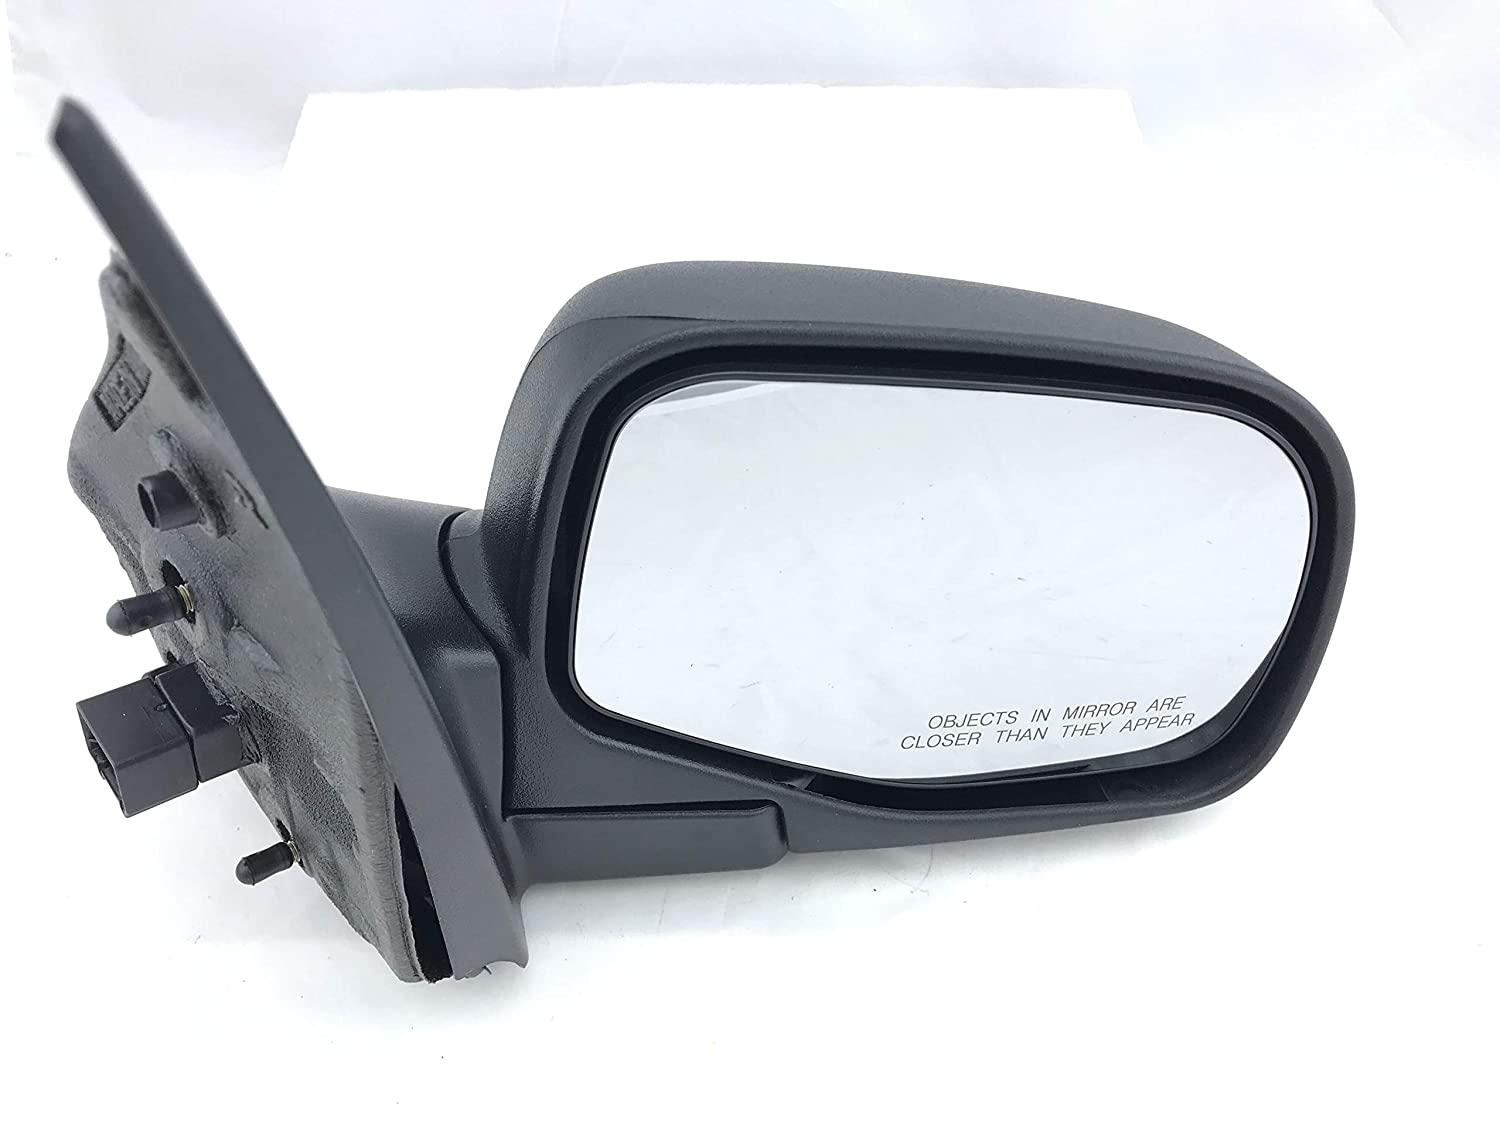 TEXTURED Parts Link #: 1L2Z17682BAACP OE: FO1321211 | Right Outside Rear View Mirror Passenger Side Mirror for FORD//MC EXPLORER//MOUNTAINEER 02-05 W//PDL PWR N-HT MIR RH